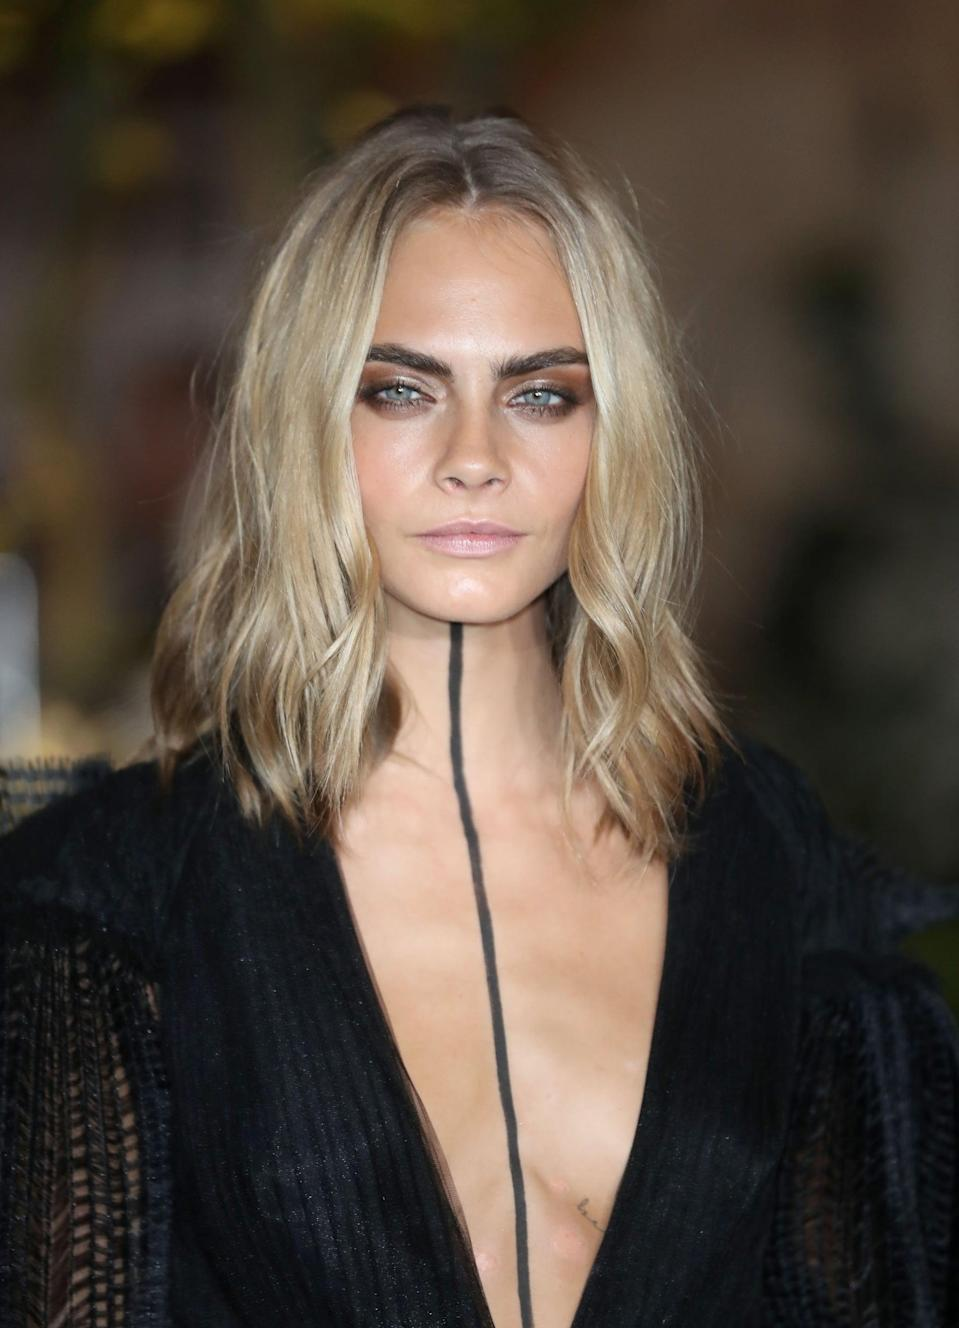 <p>If you're thinking about dyeing your hair dark for Winter months, let Delevingne's cool-toned shade of blond from September 2016 convince you otherwise. The pale hue is a great way to go lighter without washing out your skin in the process.</p>